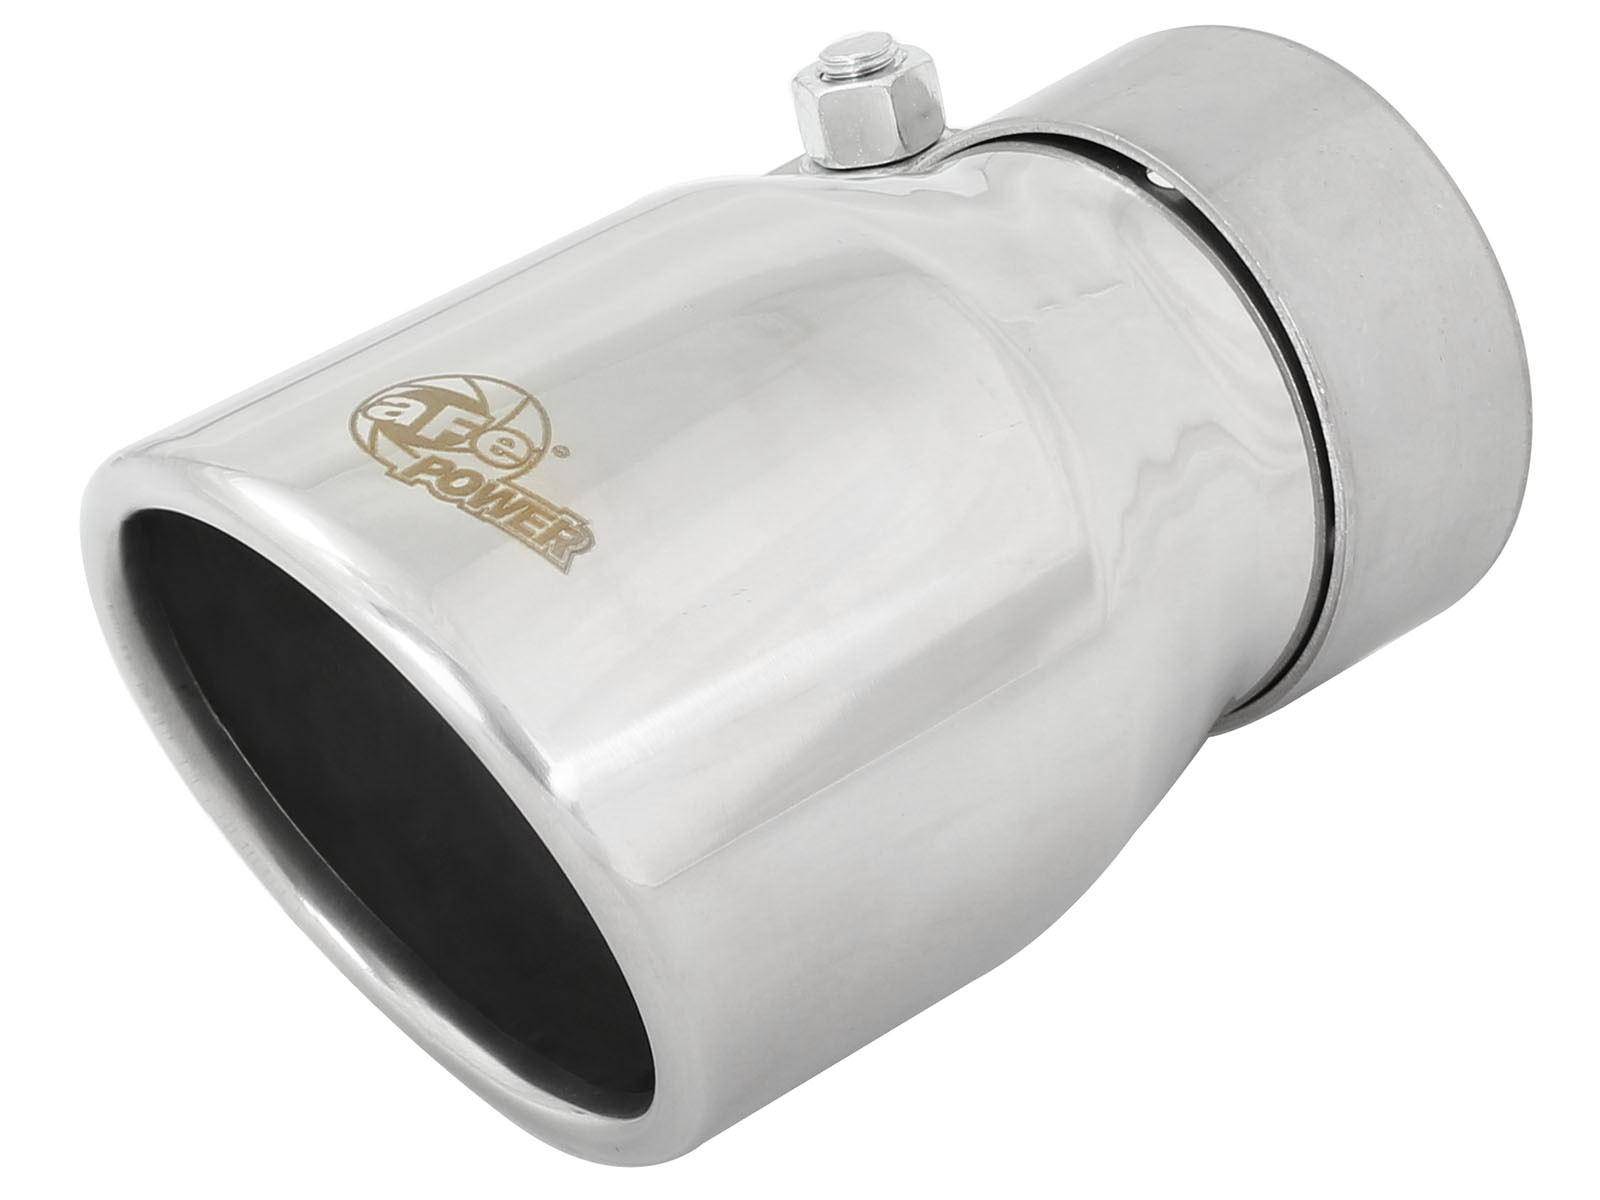 "aFe POWER 49T25354-P06 MACH Force-Xp 2-1/2"" 304 Stainless Steel Exhaust Tip"